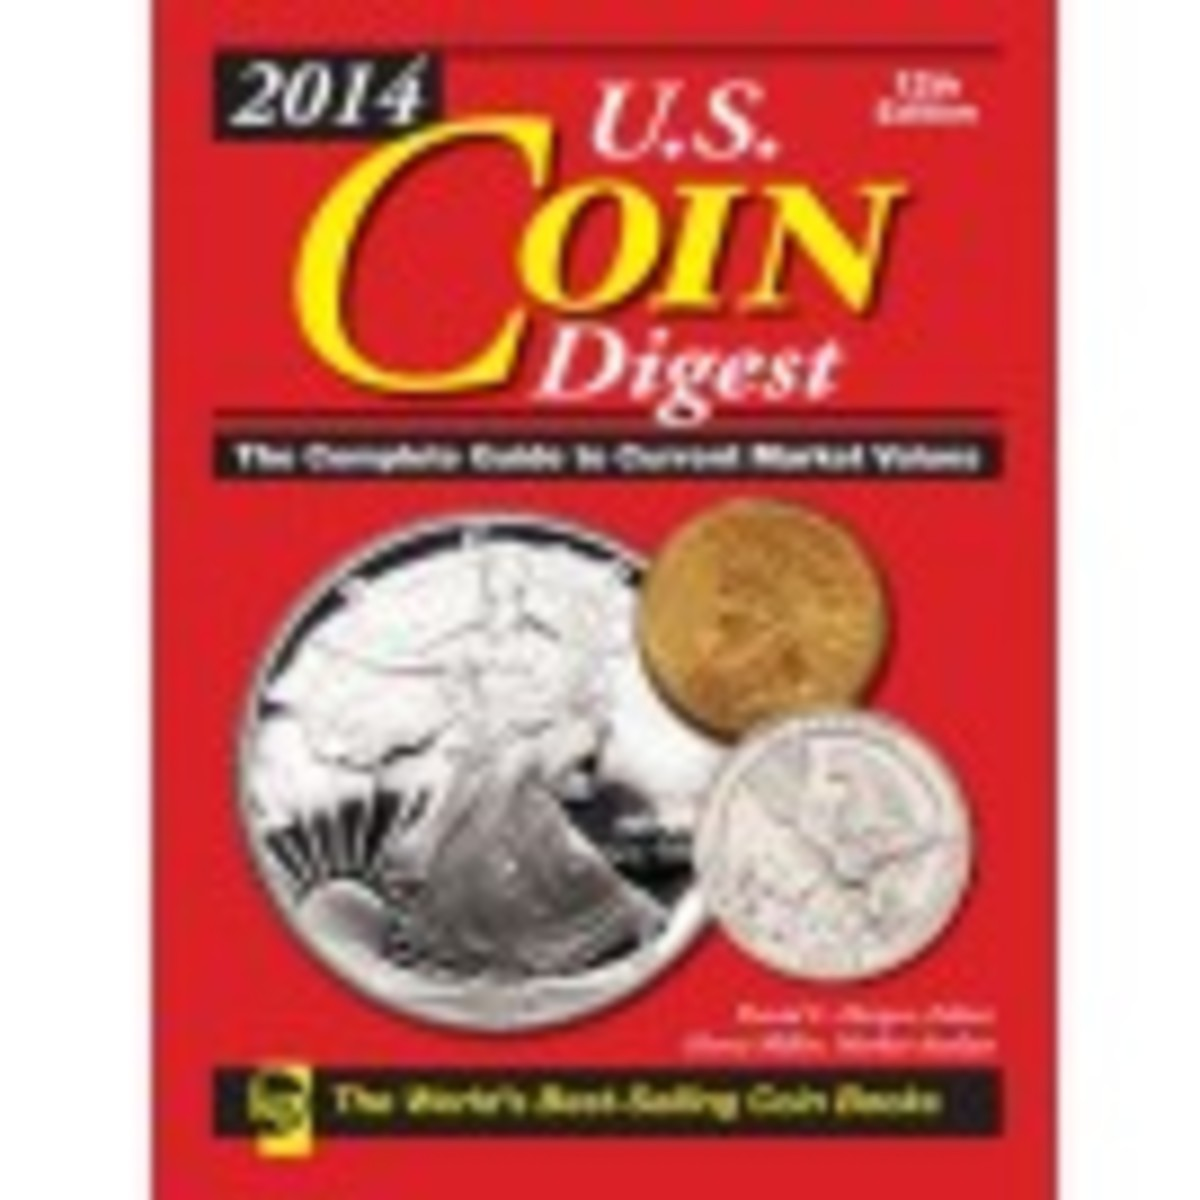 2014 U.S. Coin Digest 12th Edition